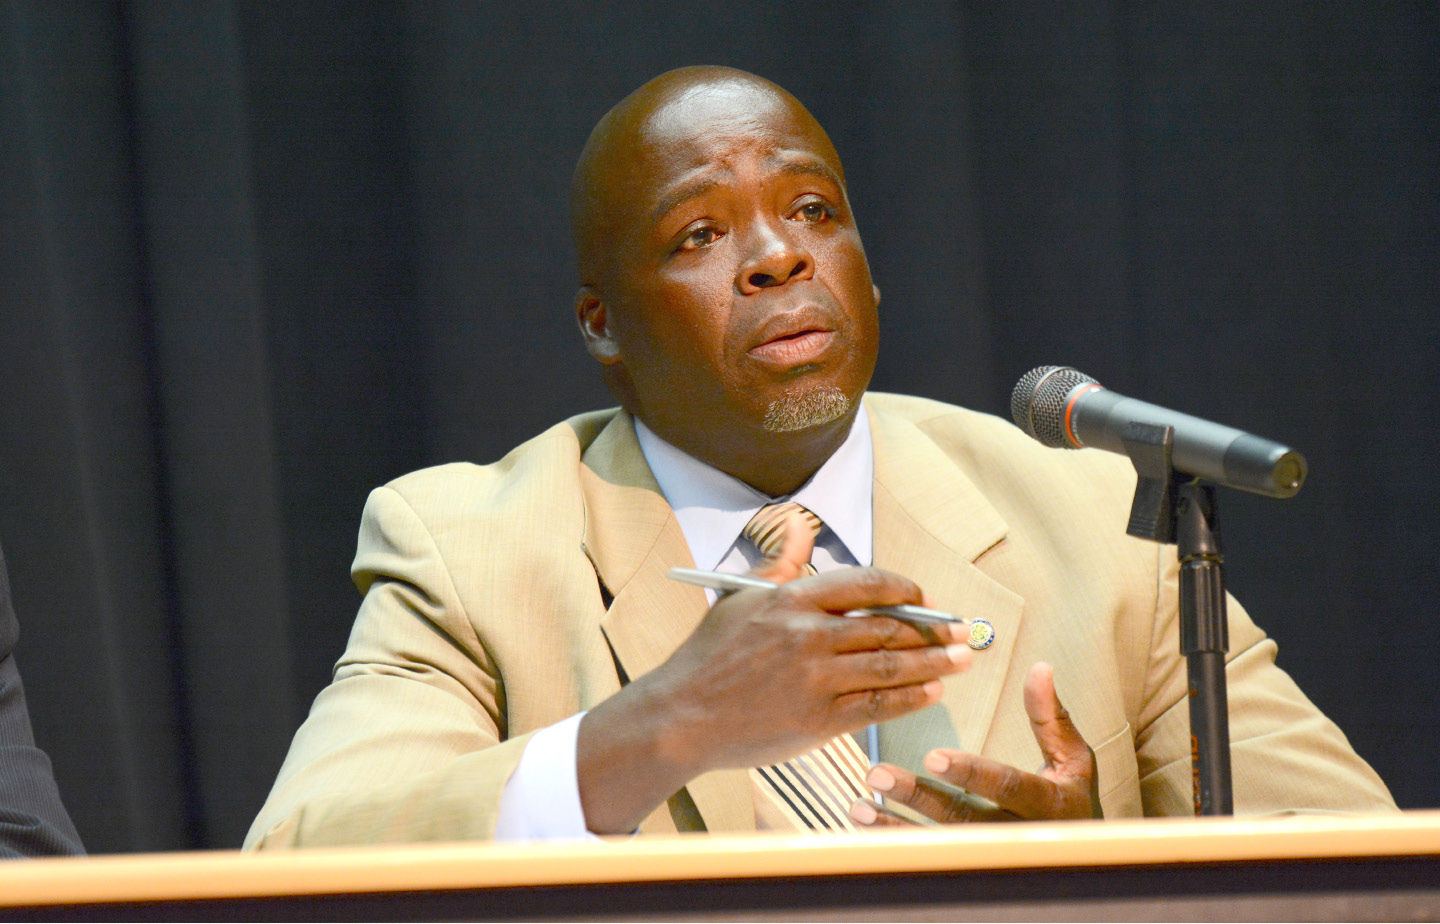 FILE PHOTO -- City Councilor Larue Graham speaks at a public forum on an increase in violence in Meriden on Tuesday, Sept. 20, 2016. | Bryan Lipiner, Record-Journal